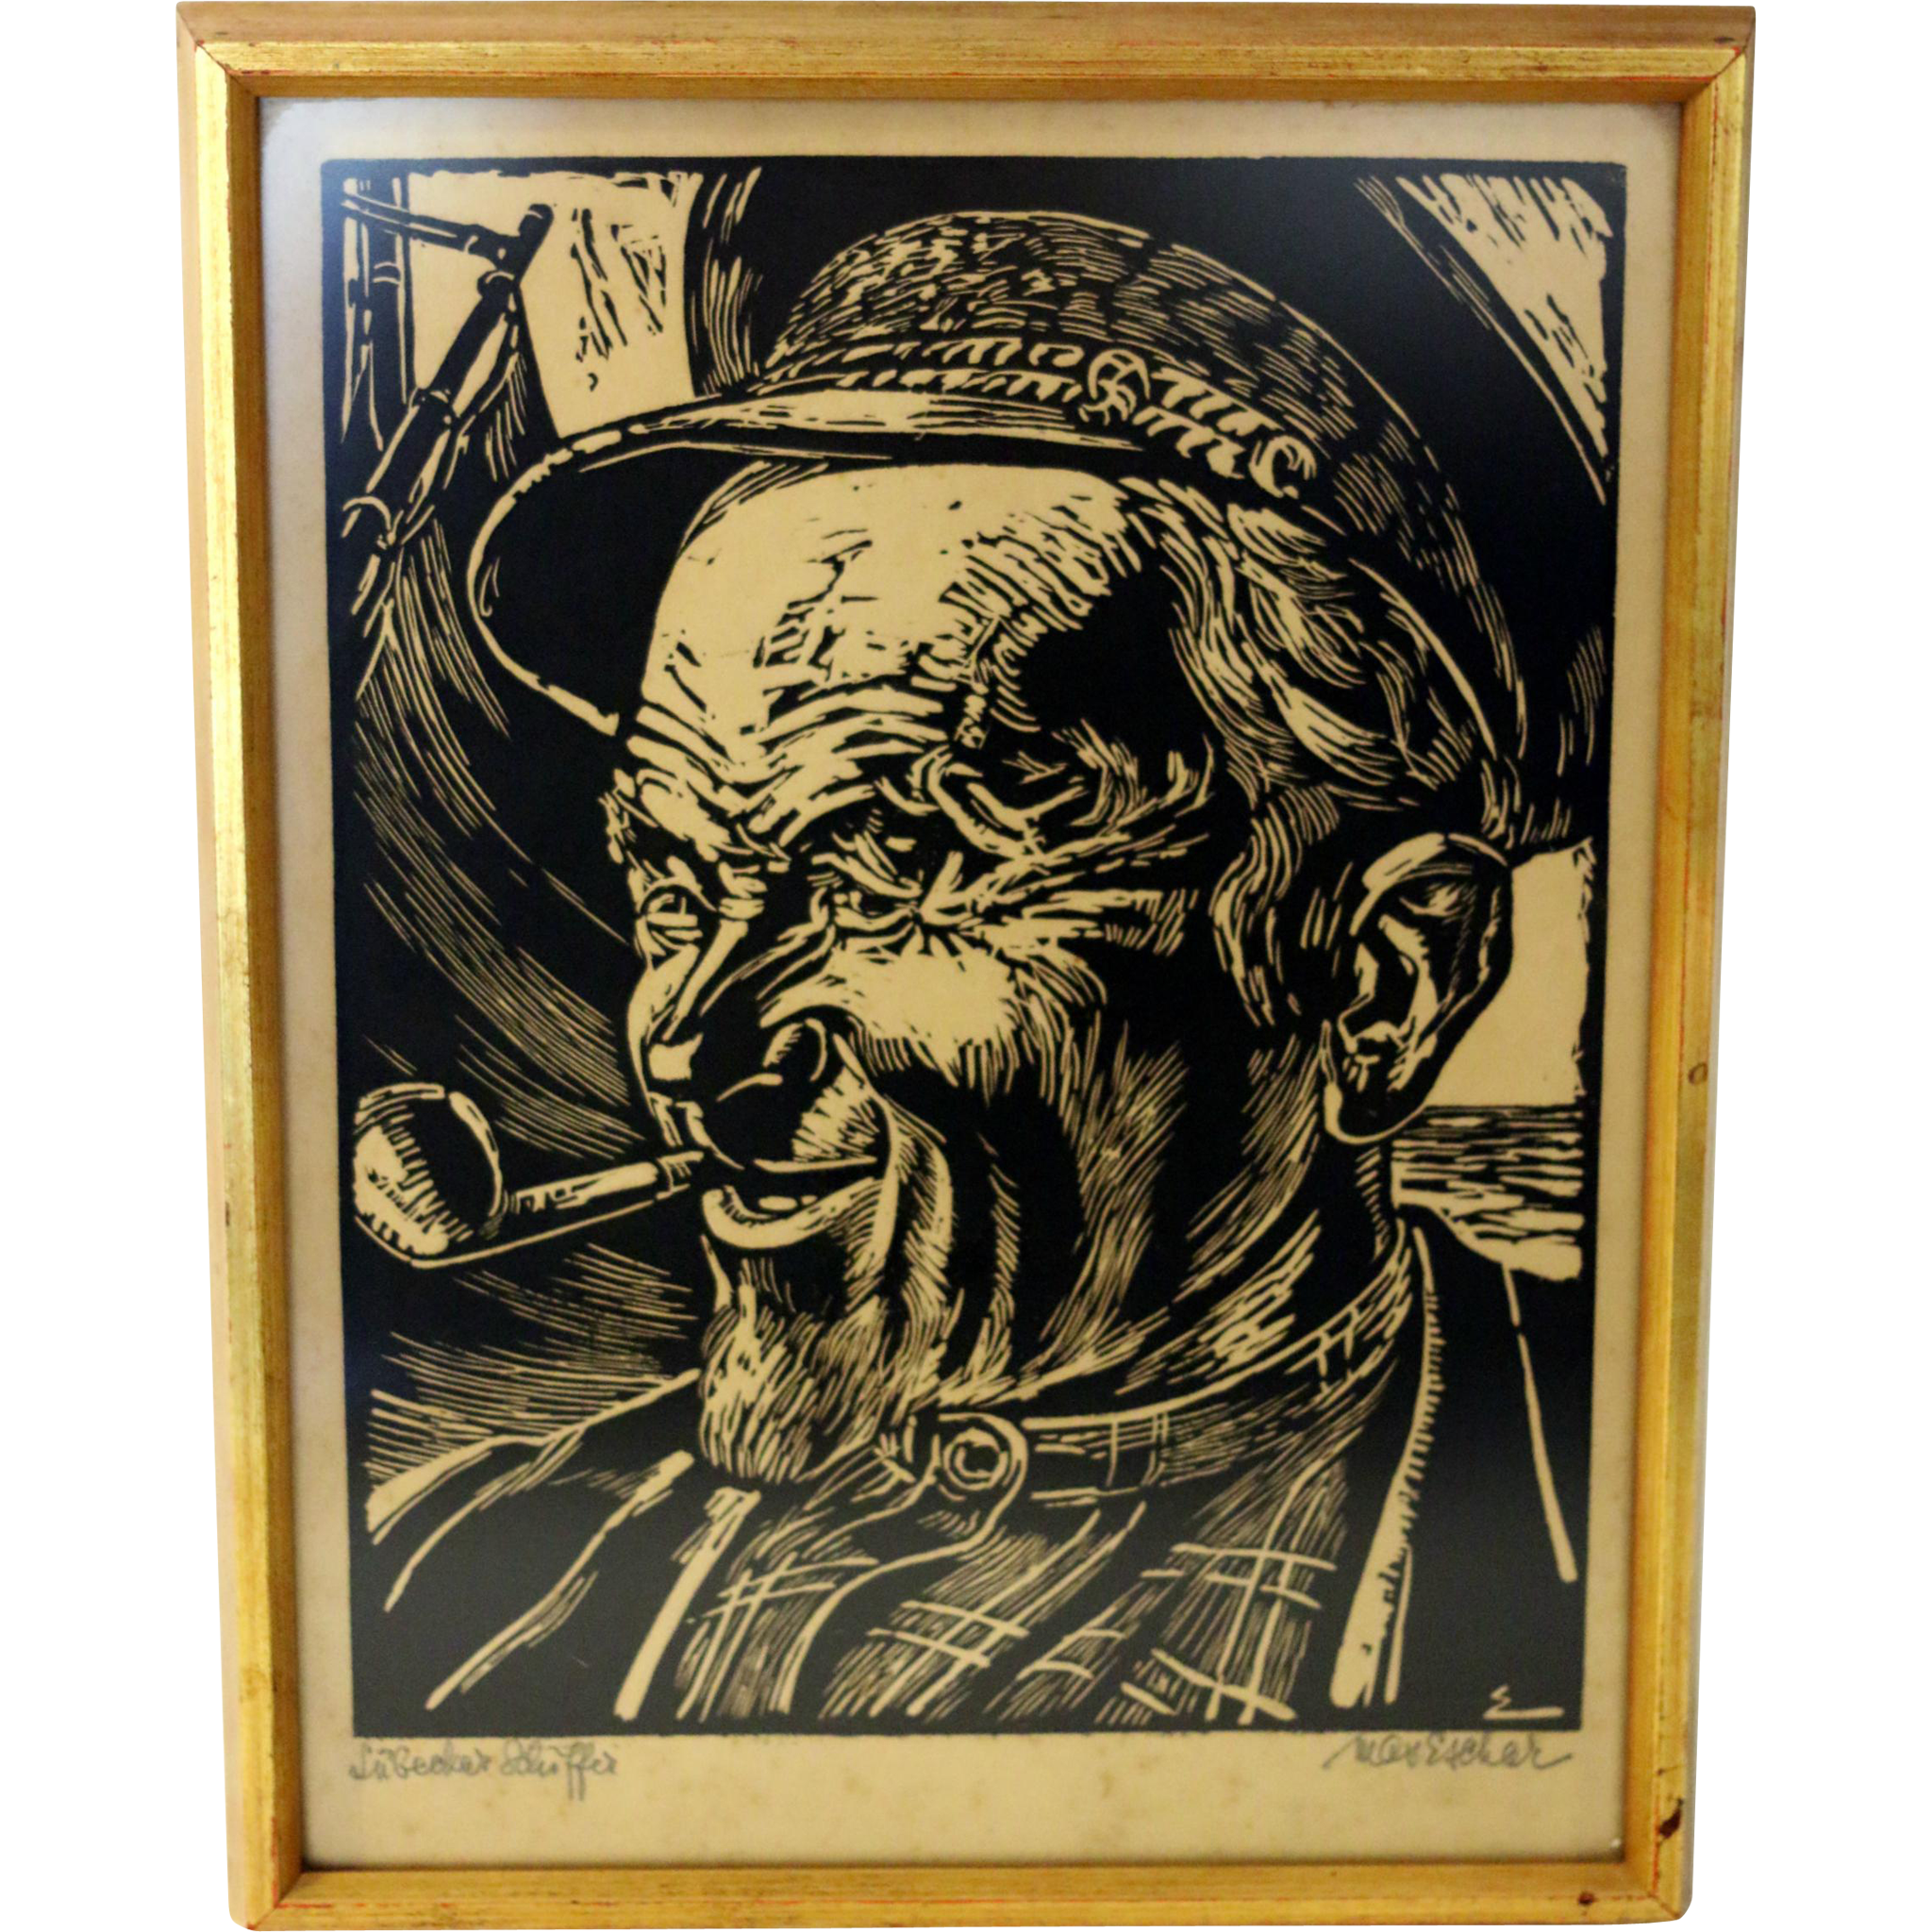 German Expressionist Woodcut Of Sailor From